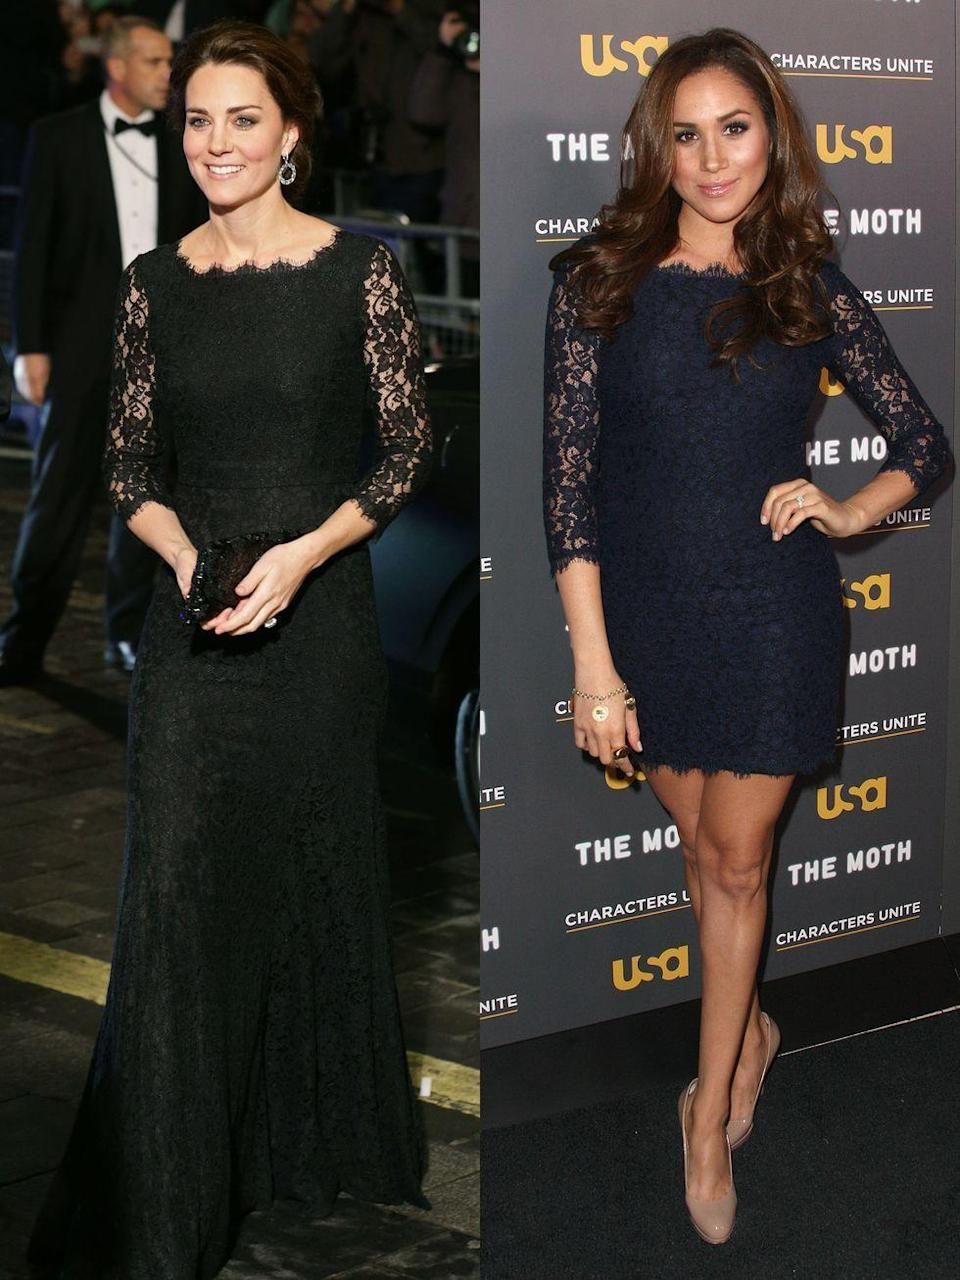 """<p><strong>Left: </strong>Catherine, Duchess of Cambridge arrived for the 2014 <a href=""""https://www.townandcountrymag.com/leisure/arts-and-culture/a10284914/beatles-royal-variety-performance/"""" rel=""""nofollow noopener"""" target=""""_blank"""" data-ylk=""""slk:Royal Variety Performance"""" class=""""link rapid-noclick-resp"""">Royal Variety Performance</a> wearing Diane von Furstenberg's Zarita dress. In November of 2017, she rewore the dress to a charity gala at Kensington Palace.</p><p><a href=""""https://www.townandcountrymag.com/society/tradition/g12167293/kate-middleton-best-maternity-outfits/"""" rel=""""nofollow noopener"""" target=""""_blank"""" data-ylk=""""slk:See that look, here."""" class=""""link rapid-noclick-resp"""">See that look, here.</a></p><p><strong>Right: </strong>Before she was royal, the Duchess of Sussex attended an event for USA Network in 2012, wearing a shorter, navy blue version of the Zarita, two years before Duchess Kate stepped out in the style. <br></p>"""